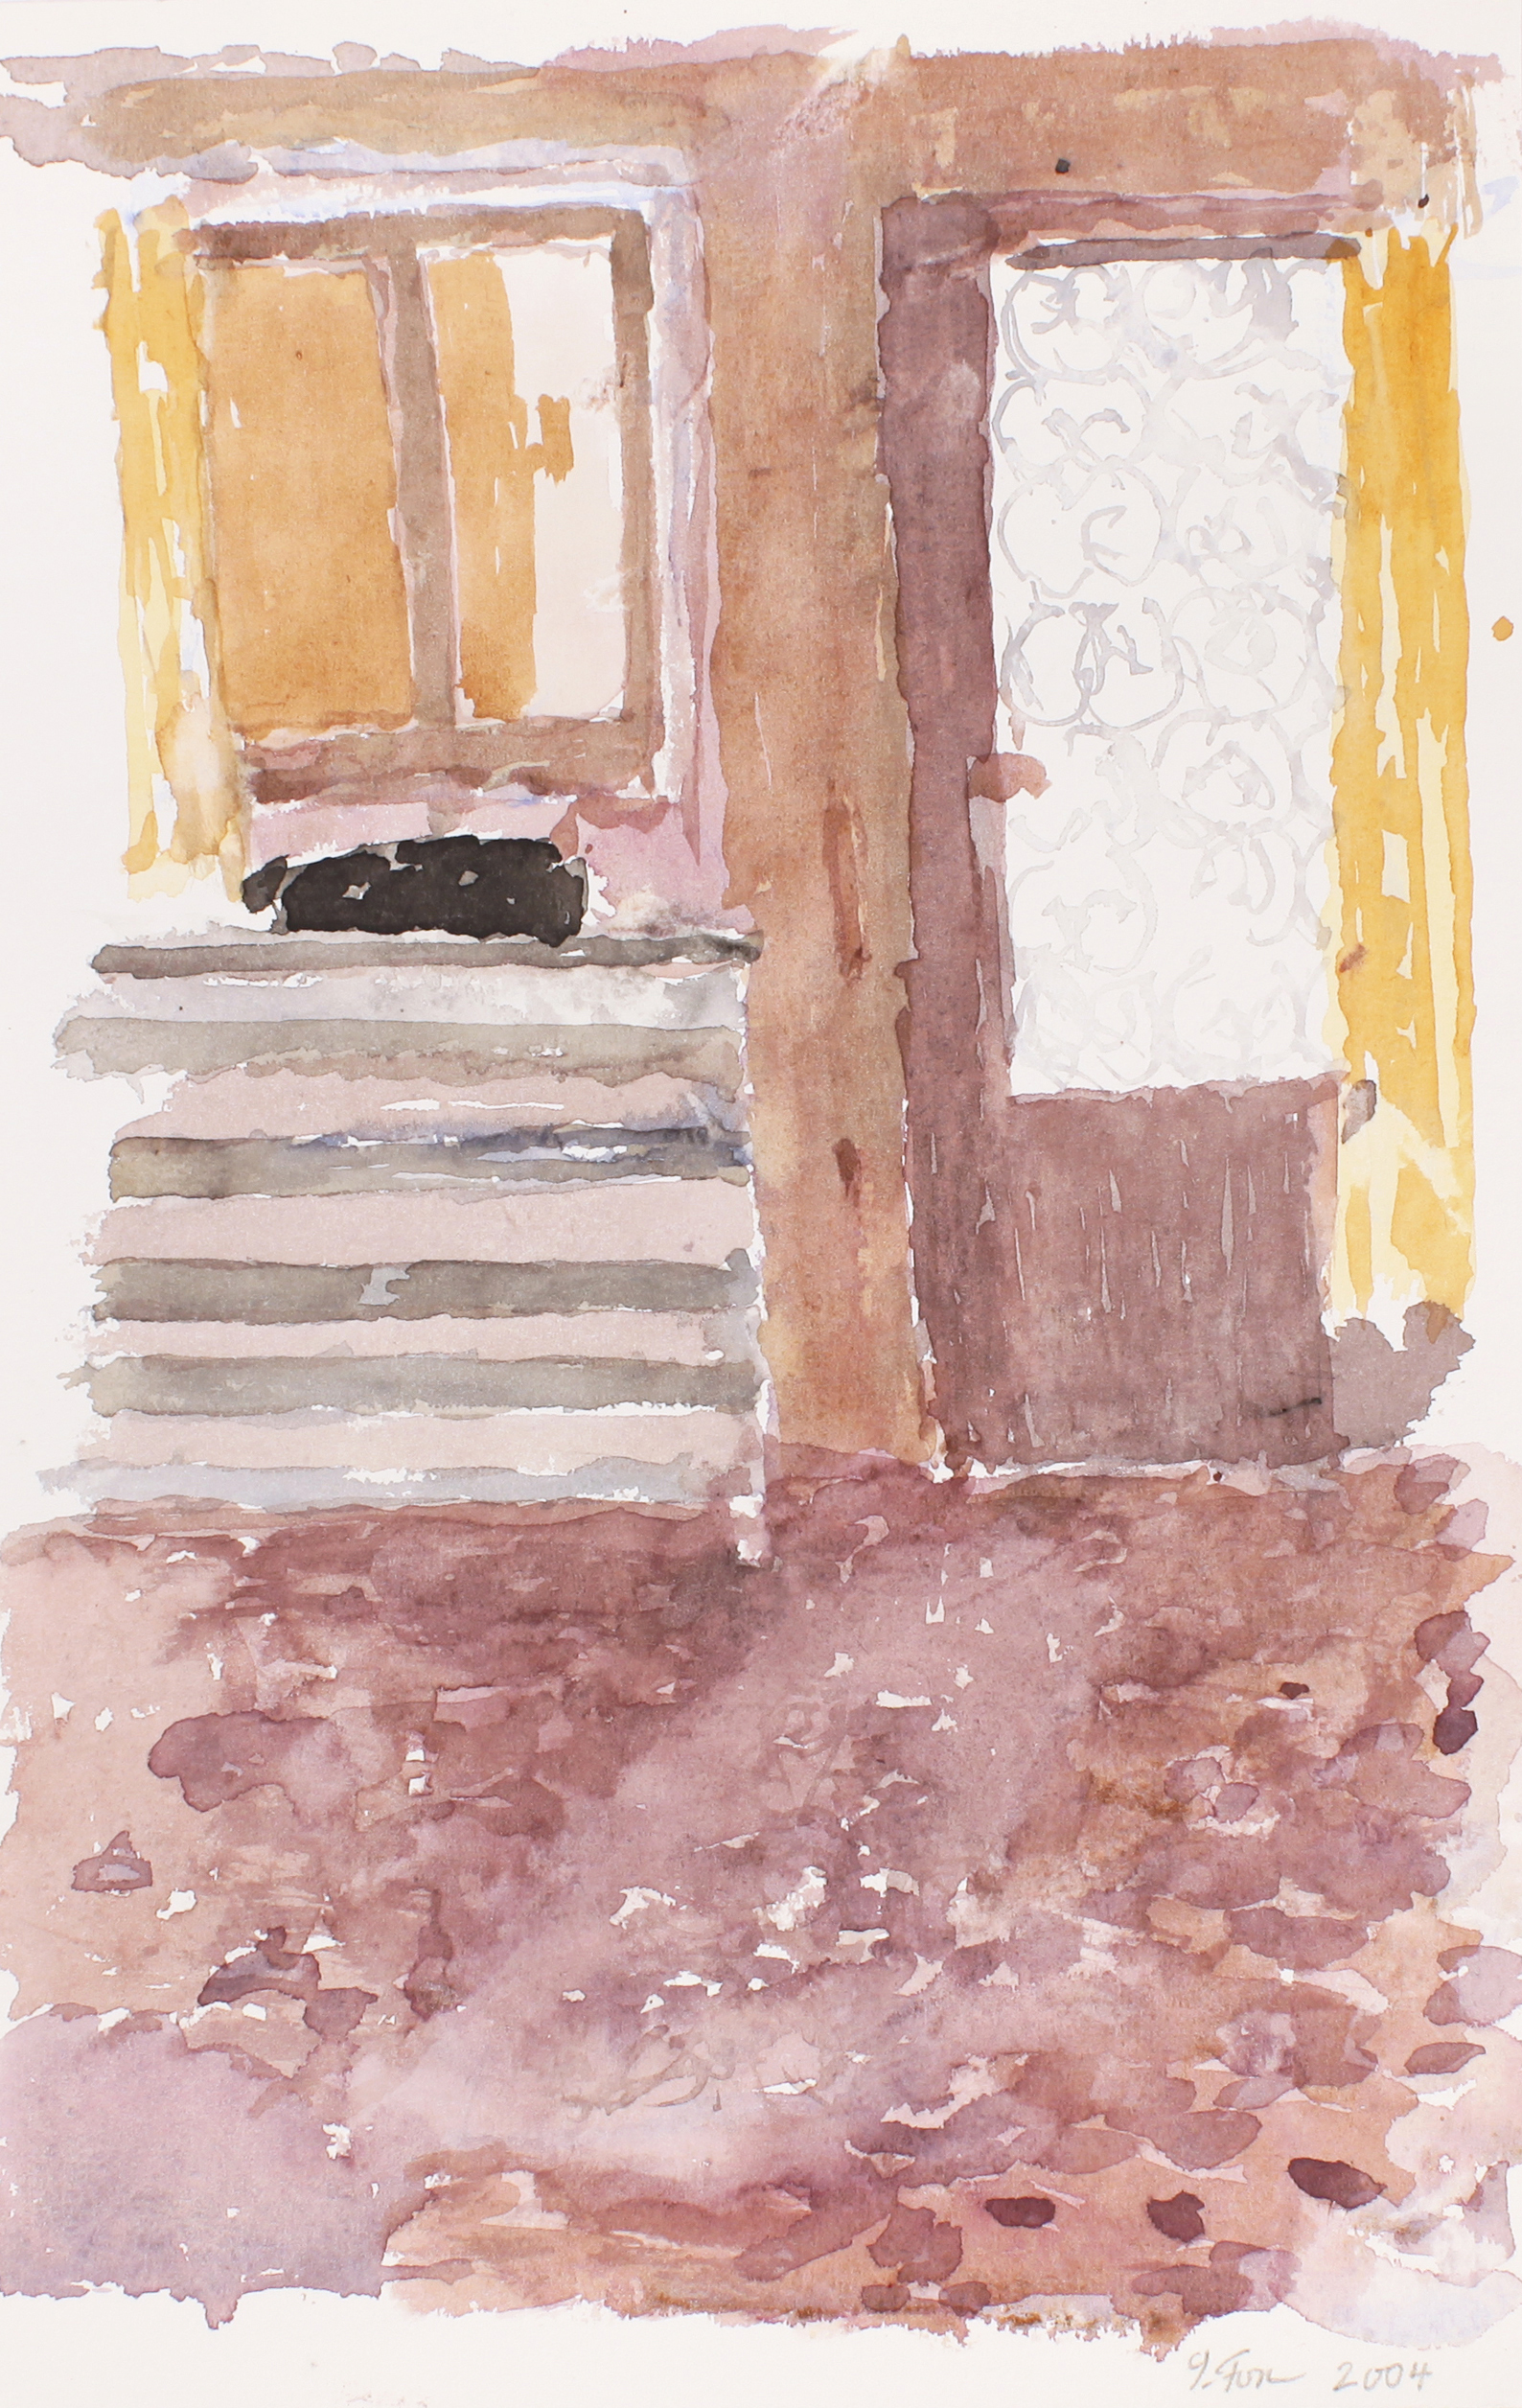 2004_Studio_Venice_watercolour_on_paper_13x8in_WPF128.jpg